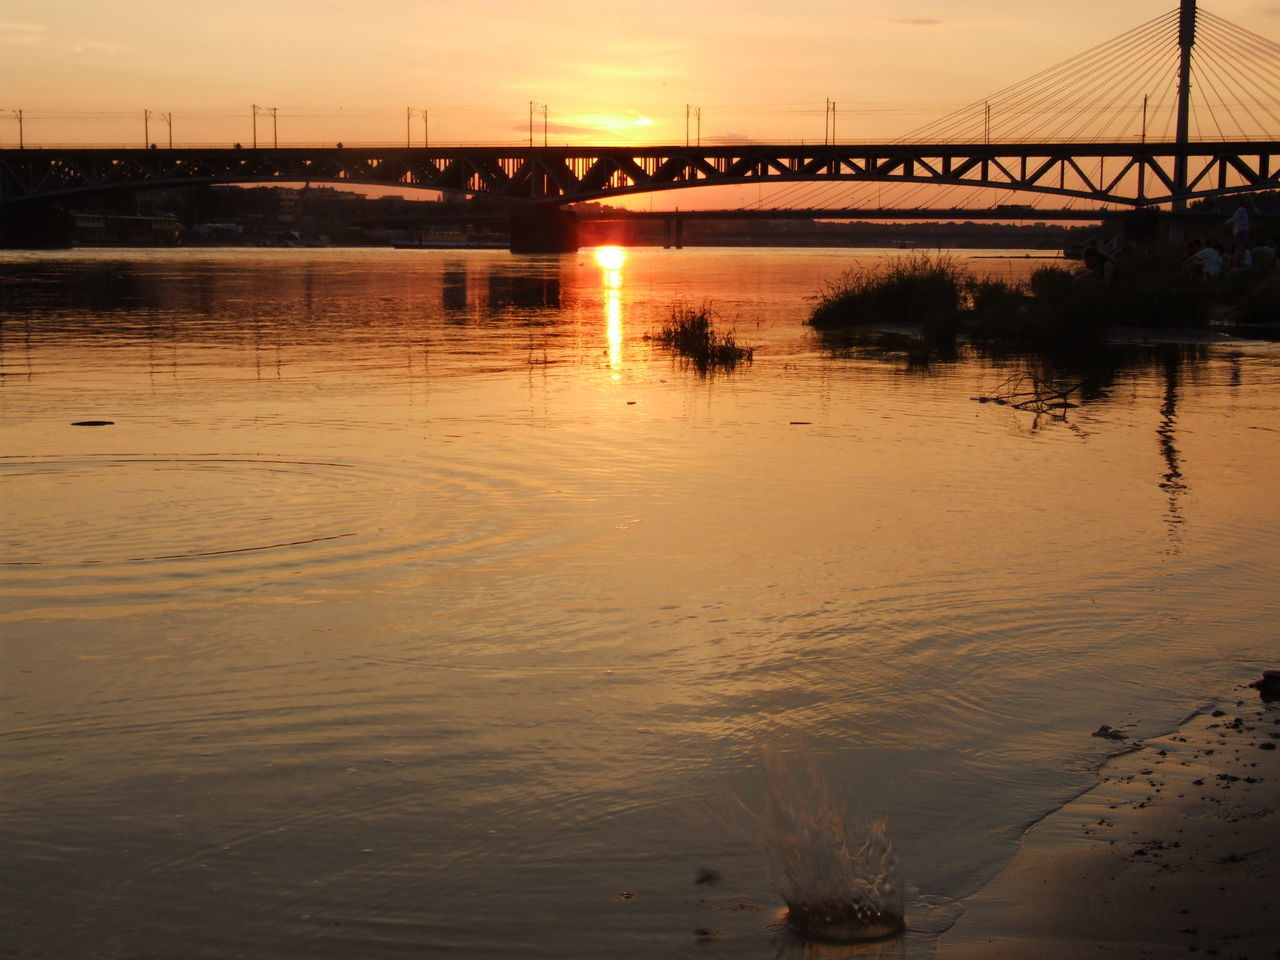 bridge - man made structure, connection, river, water, sunset, architecture, transportation, reflection, bridge, suspension bridge, built structure, outdoors, sky, nature, no people, city, day